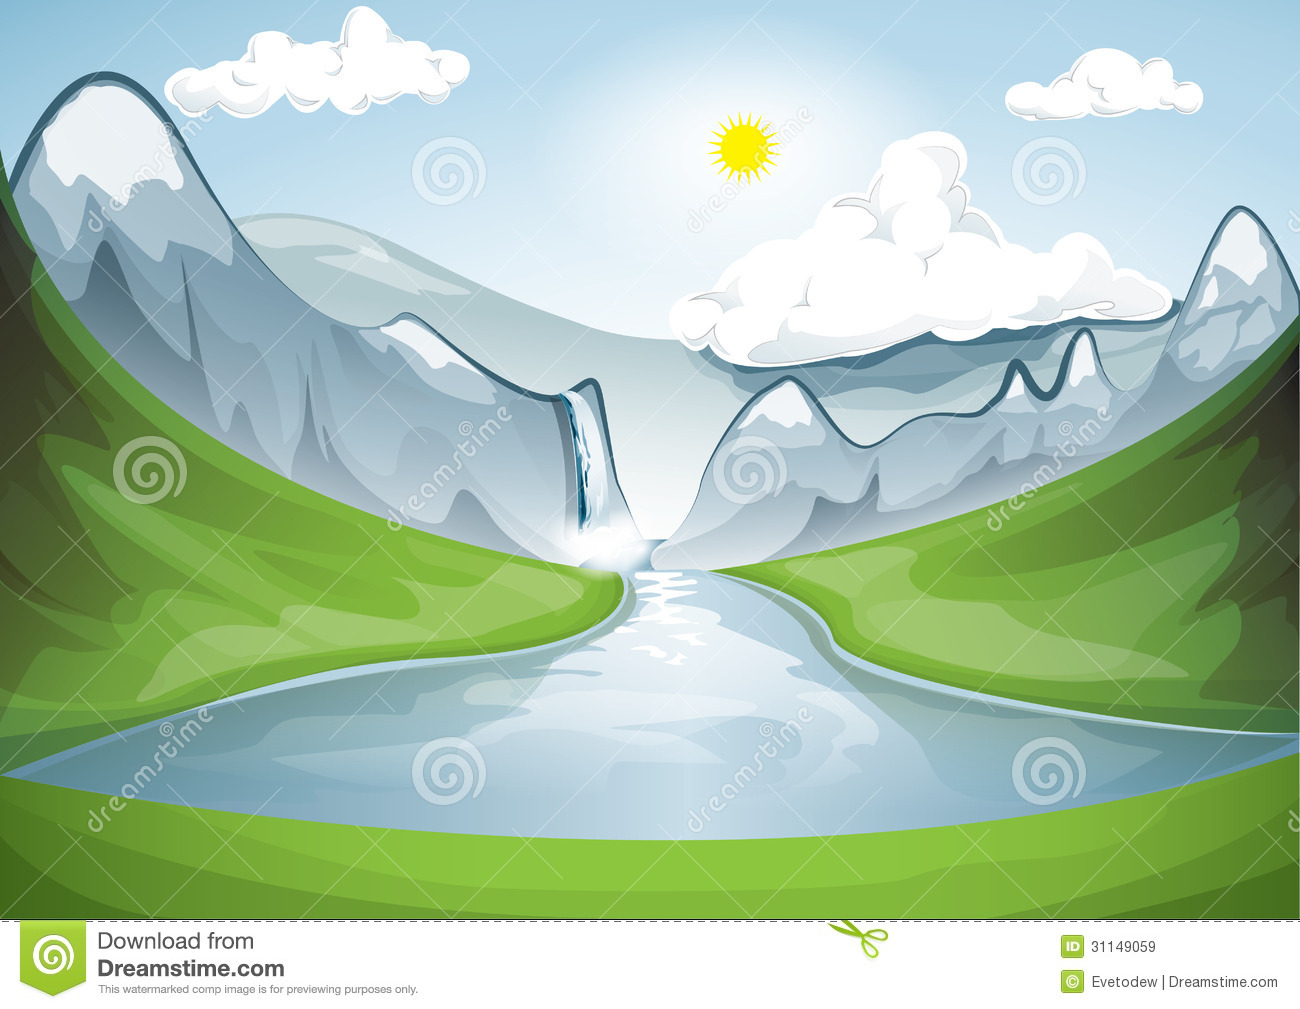 lake clipart - photo #35